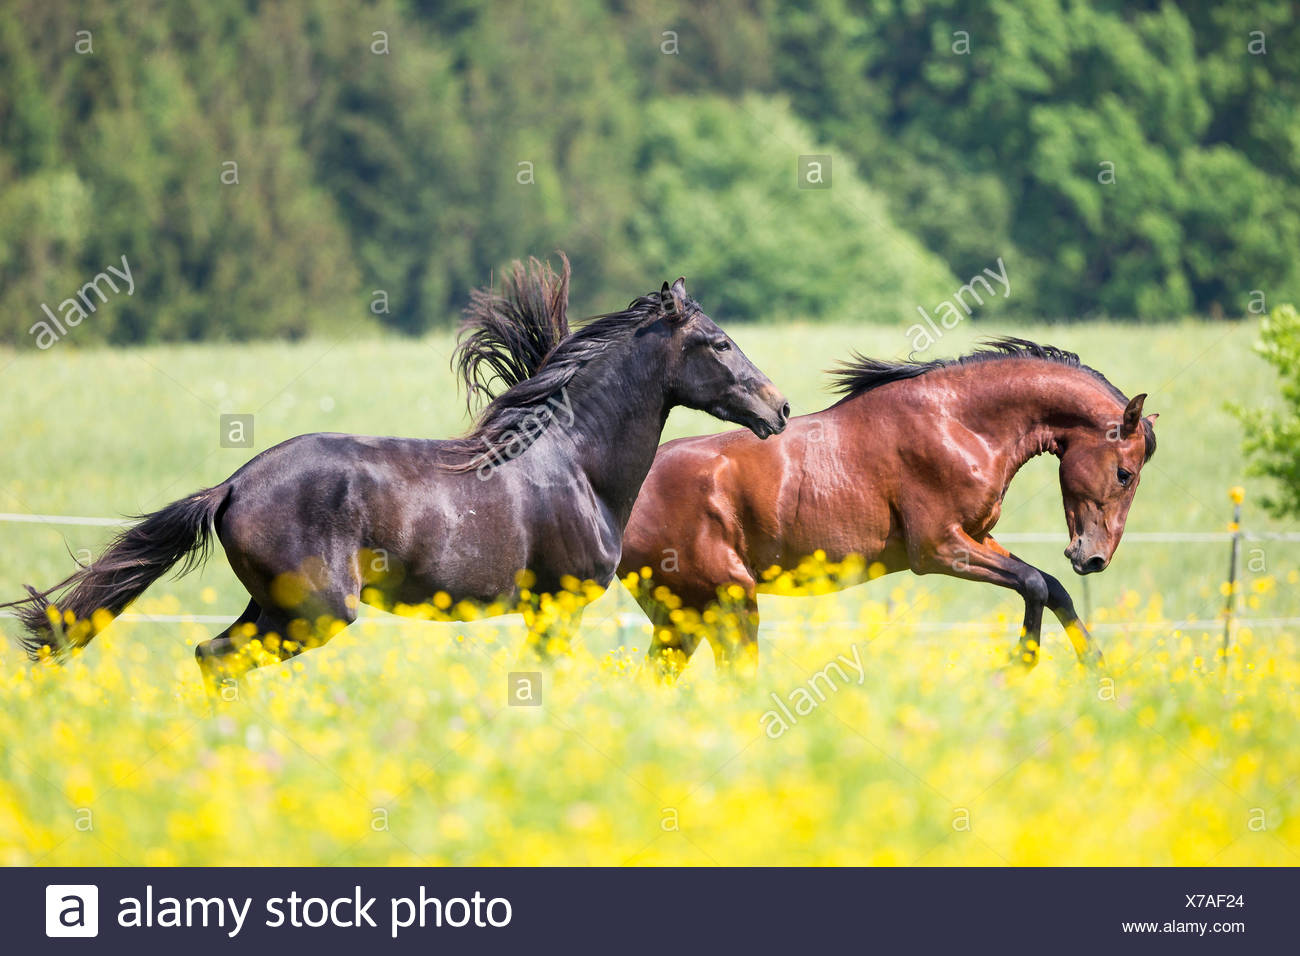 Paso Iberoamericano. Two young stallions squabbling on a pasture. Germany - Stock Image